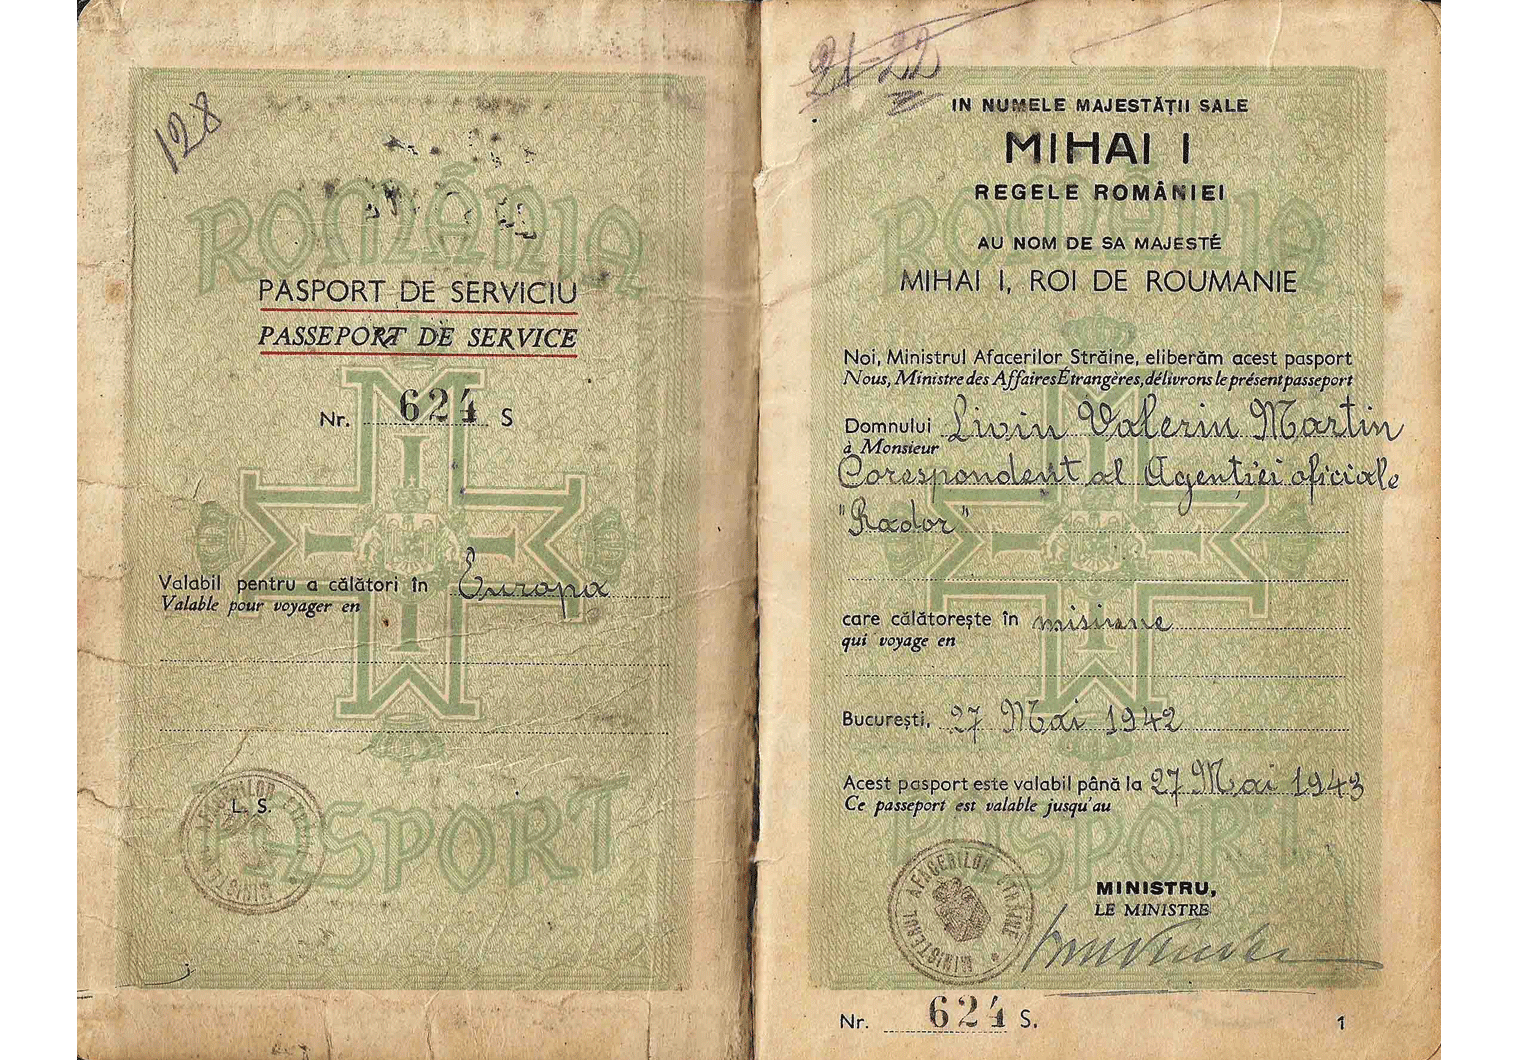 WW2 Service passport